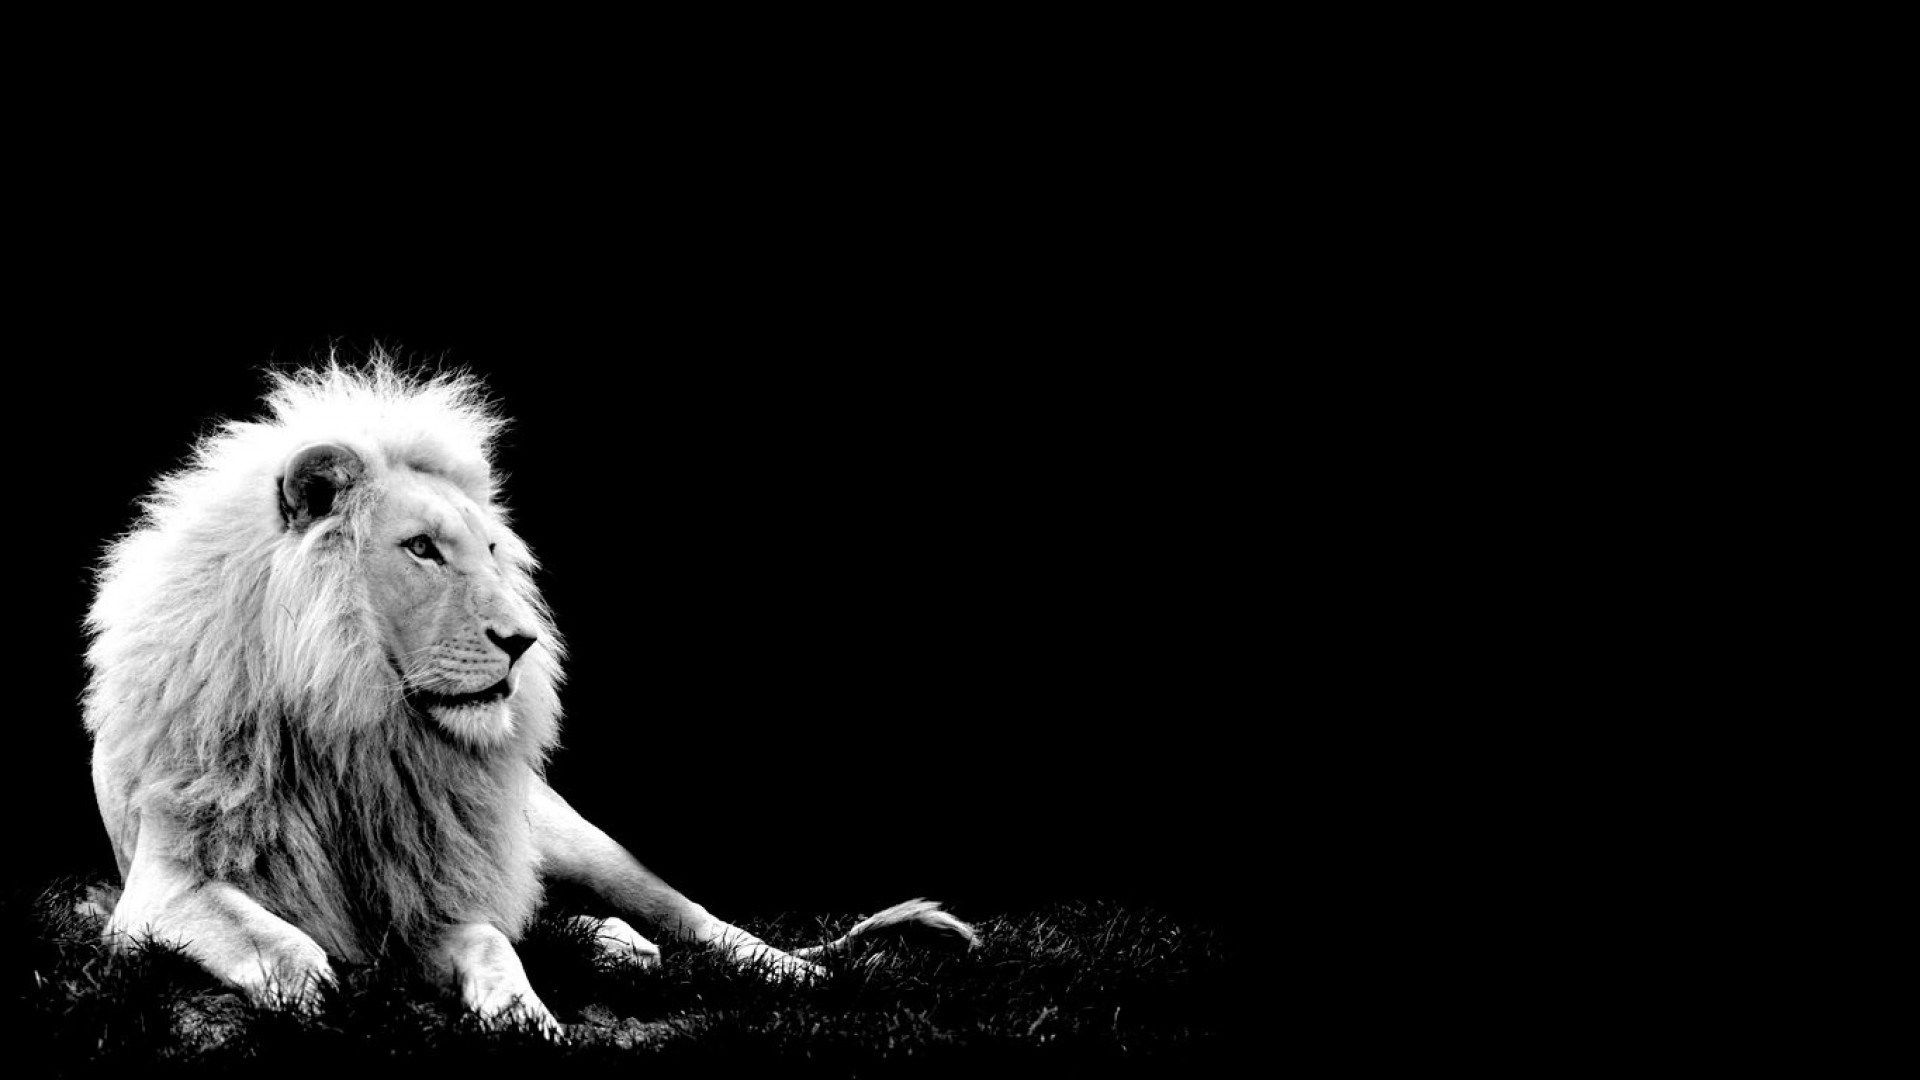 Lion Black And White Animal HD Download